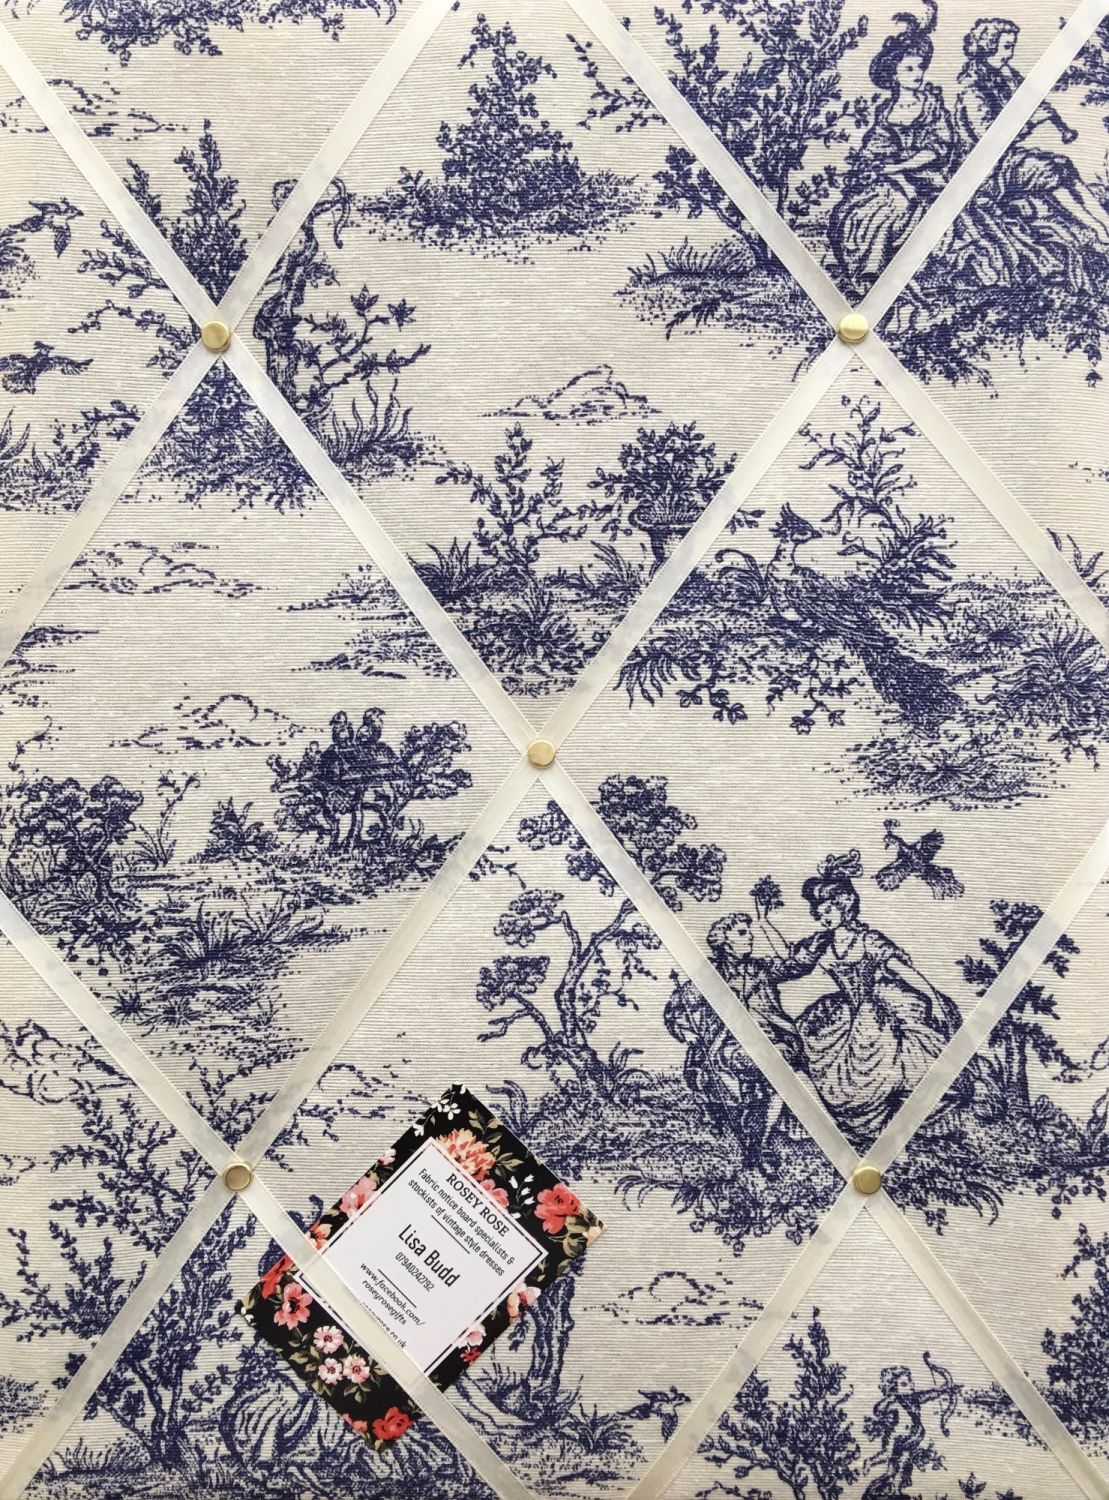 Medium 40x30cm Vintage French Lovers Toile De Jouy Navy Hand Crafted Fabric